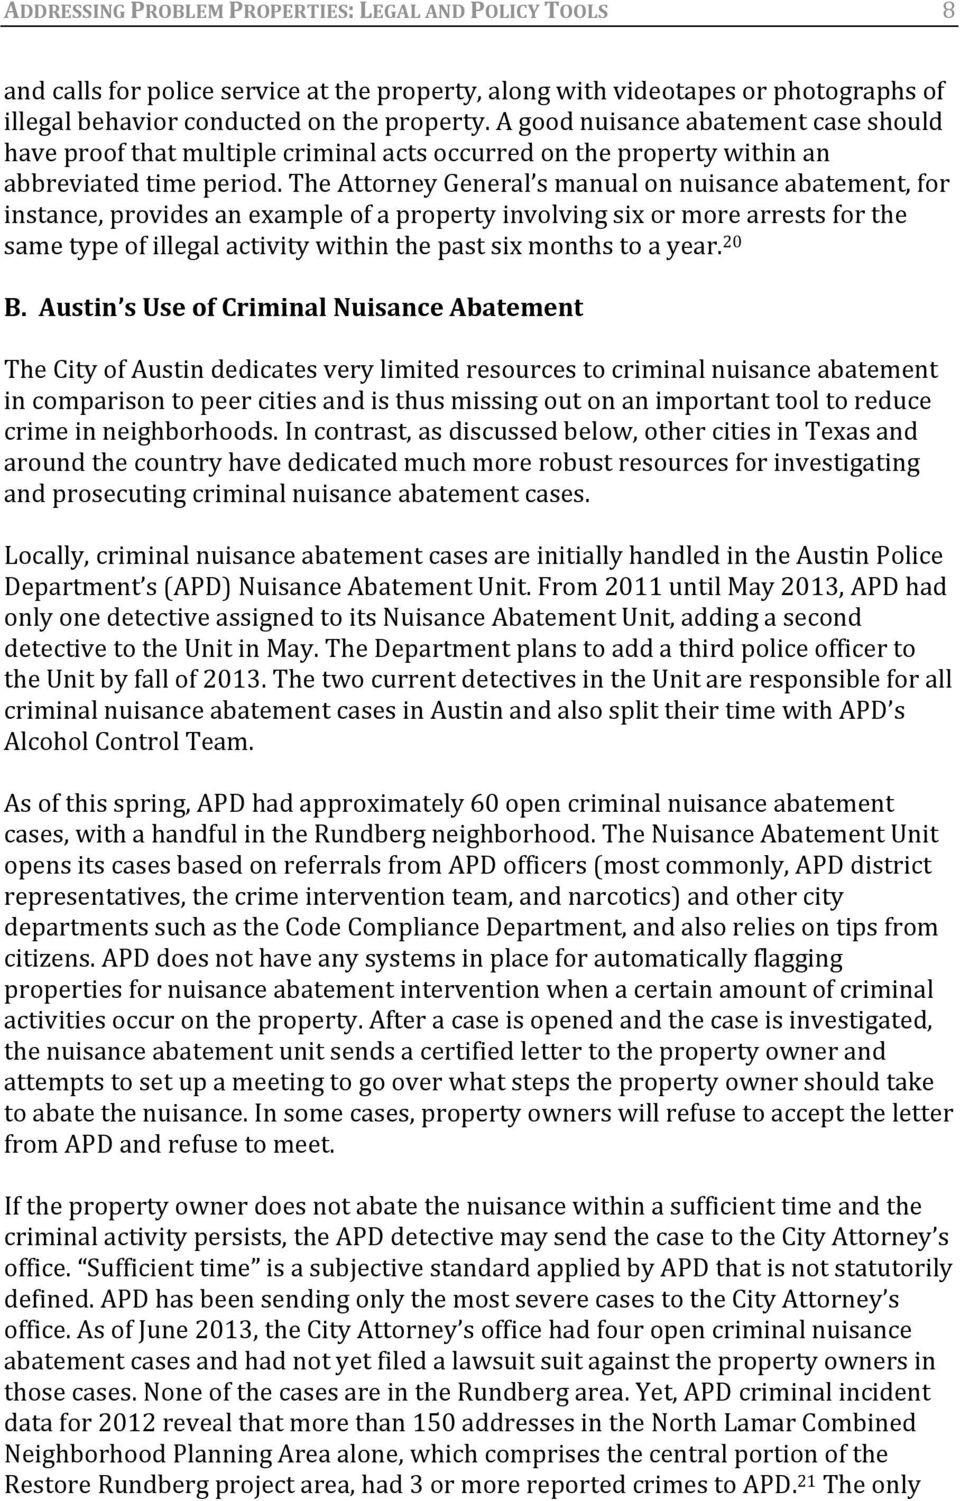 The Attorney General s manual on nuisance abatement, for instance, provides an example of a property involving six or more arrests for the same type of illegal activity within the past six months to